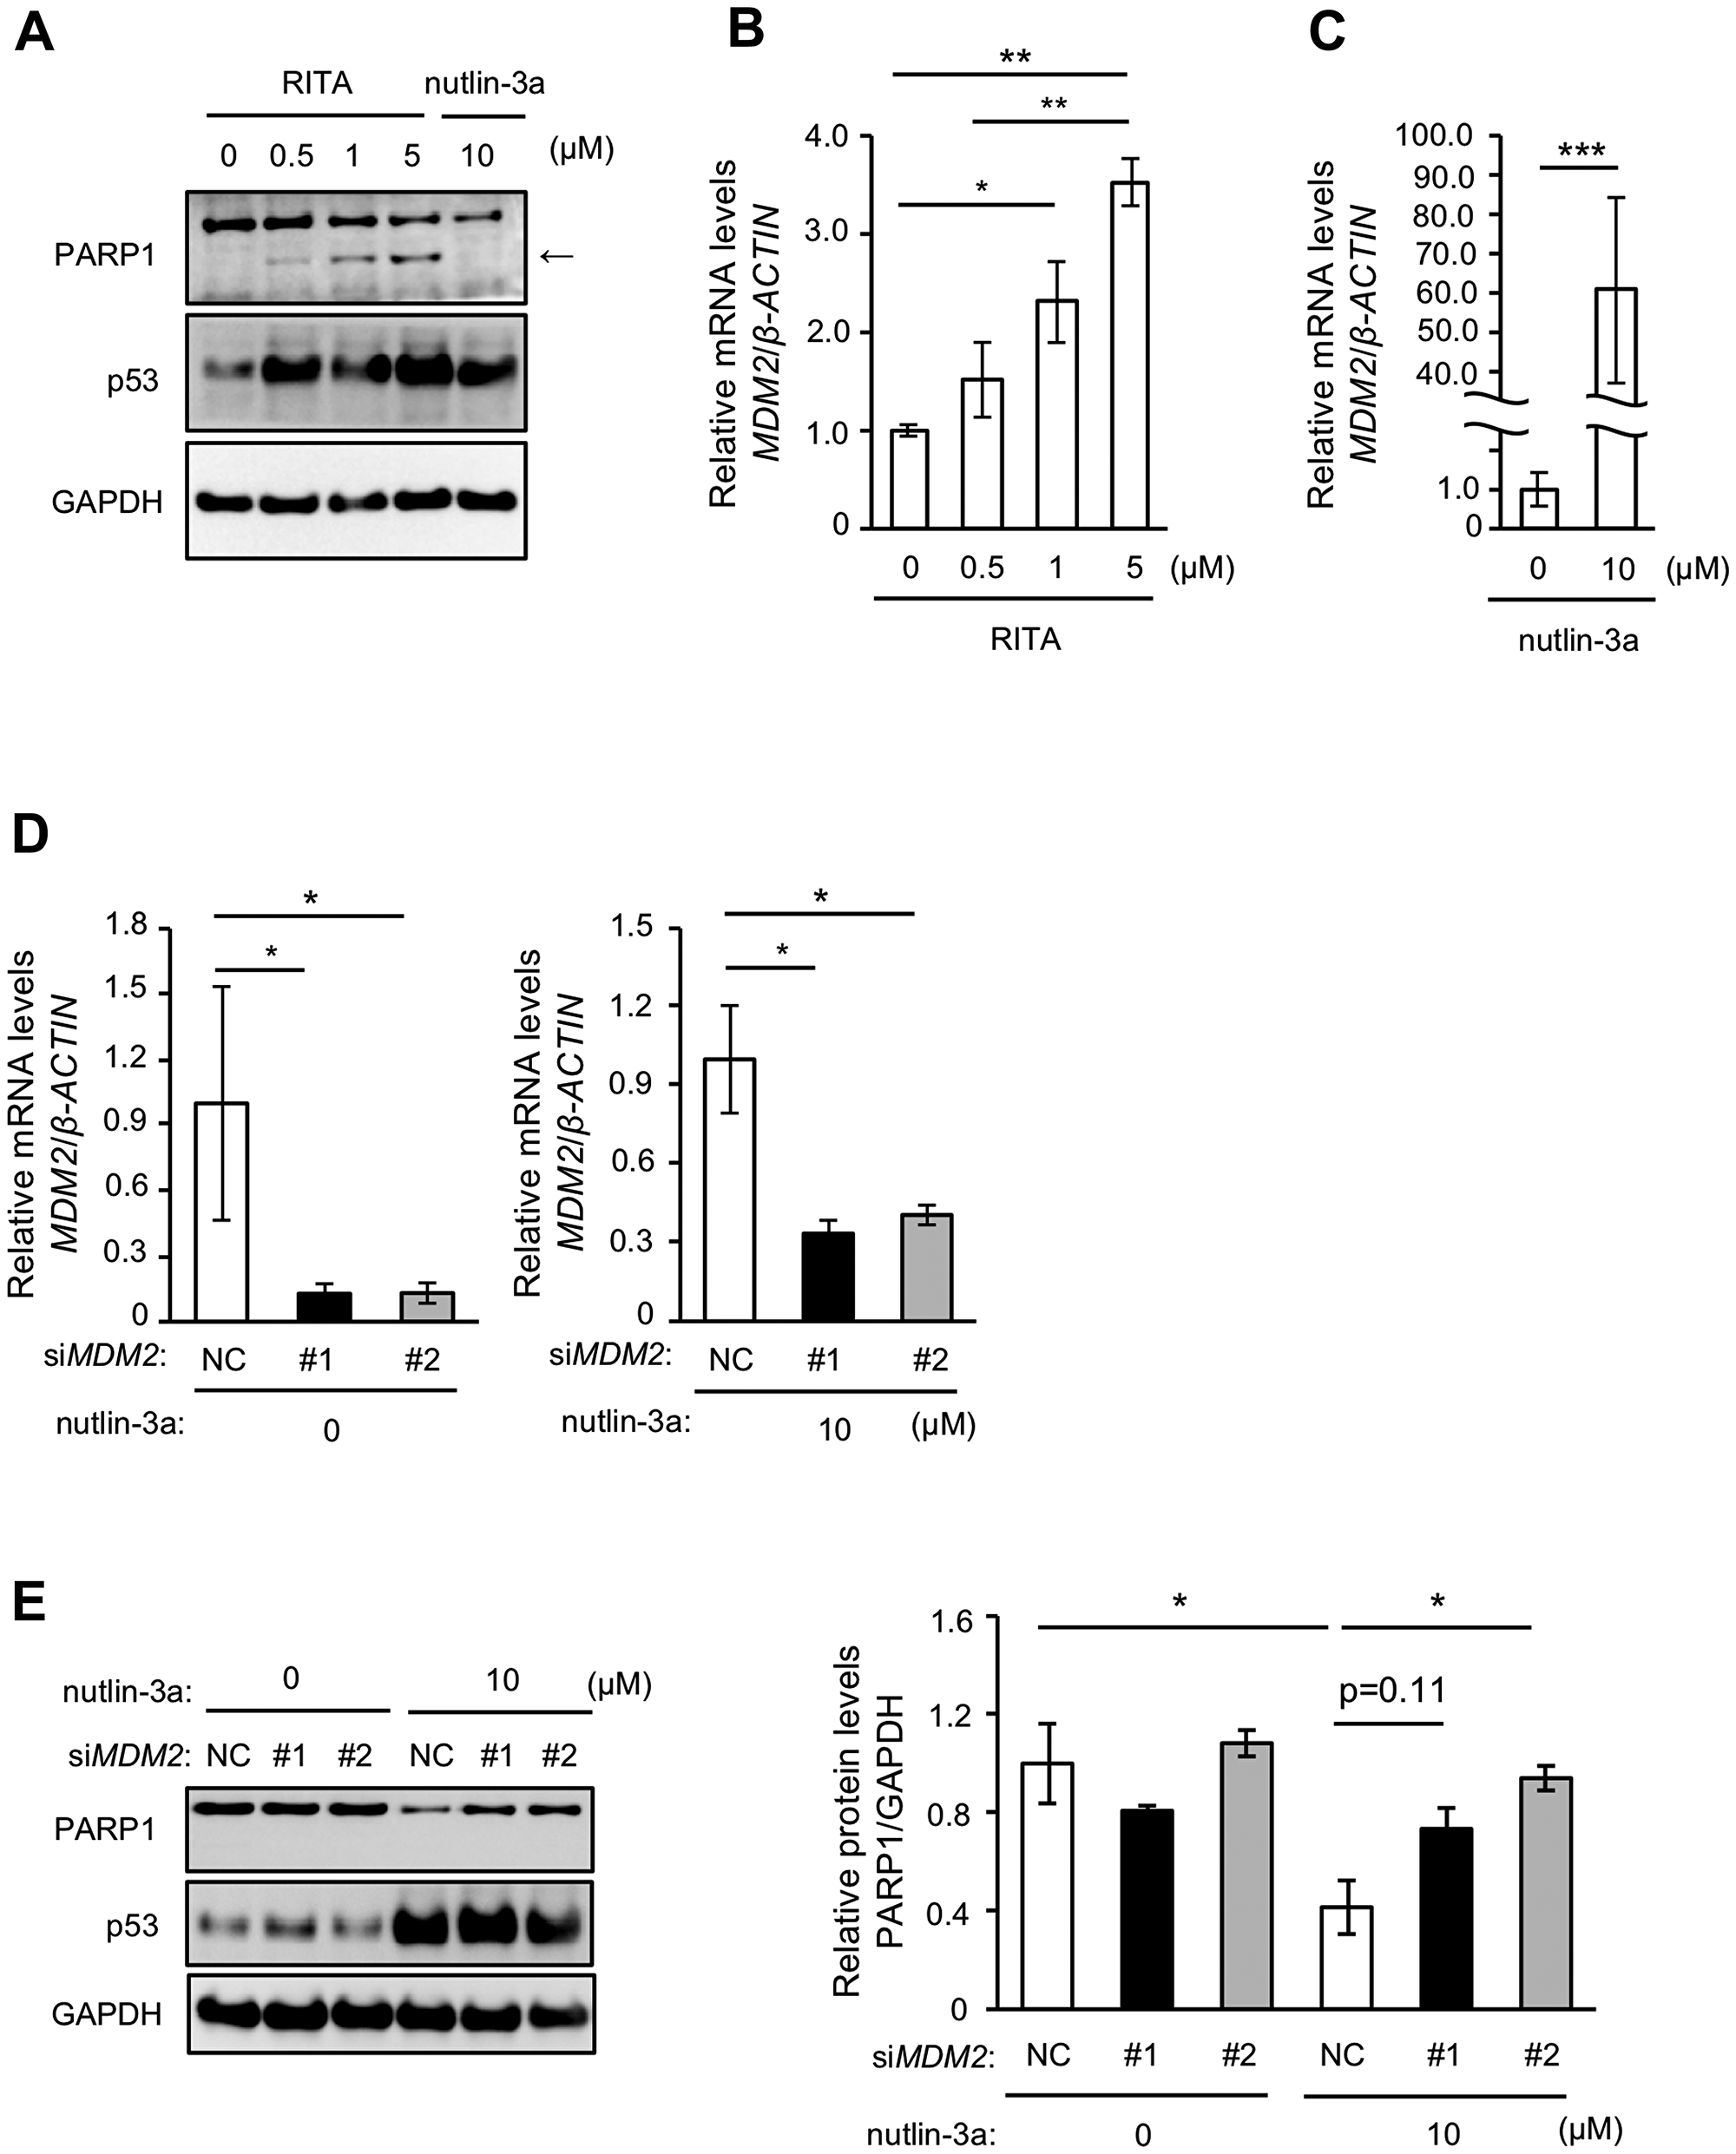 MDM2 is involved in nutlin-3a-induced PARP1 protein reduction.